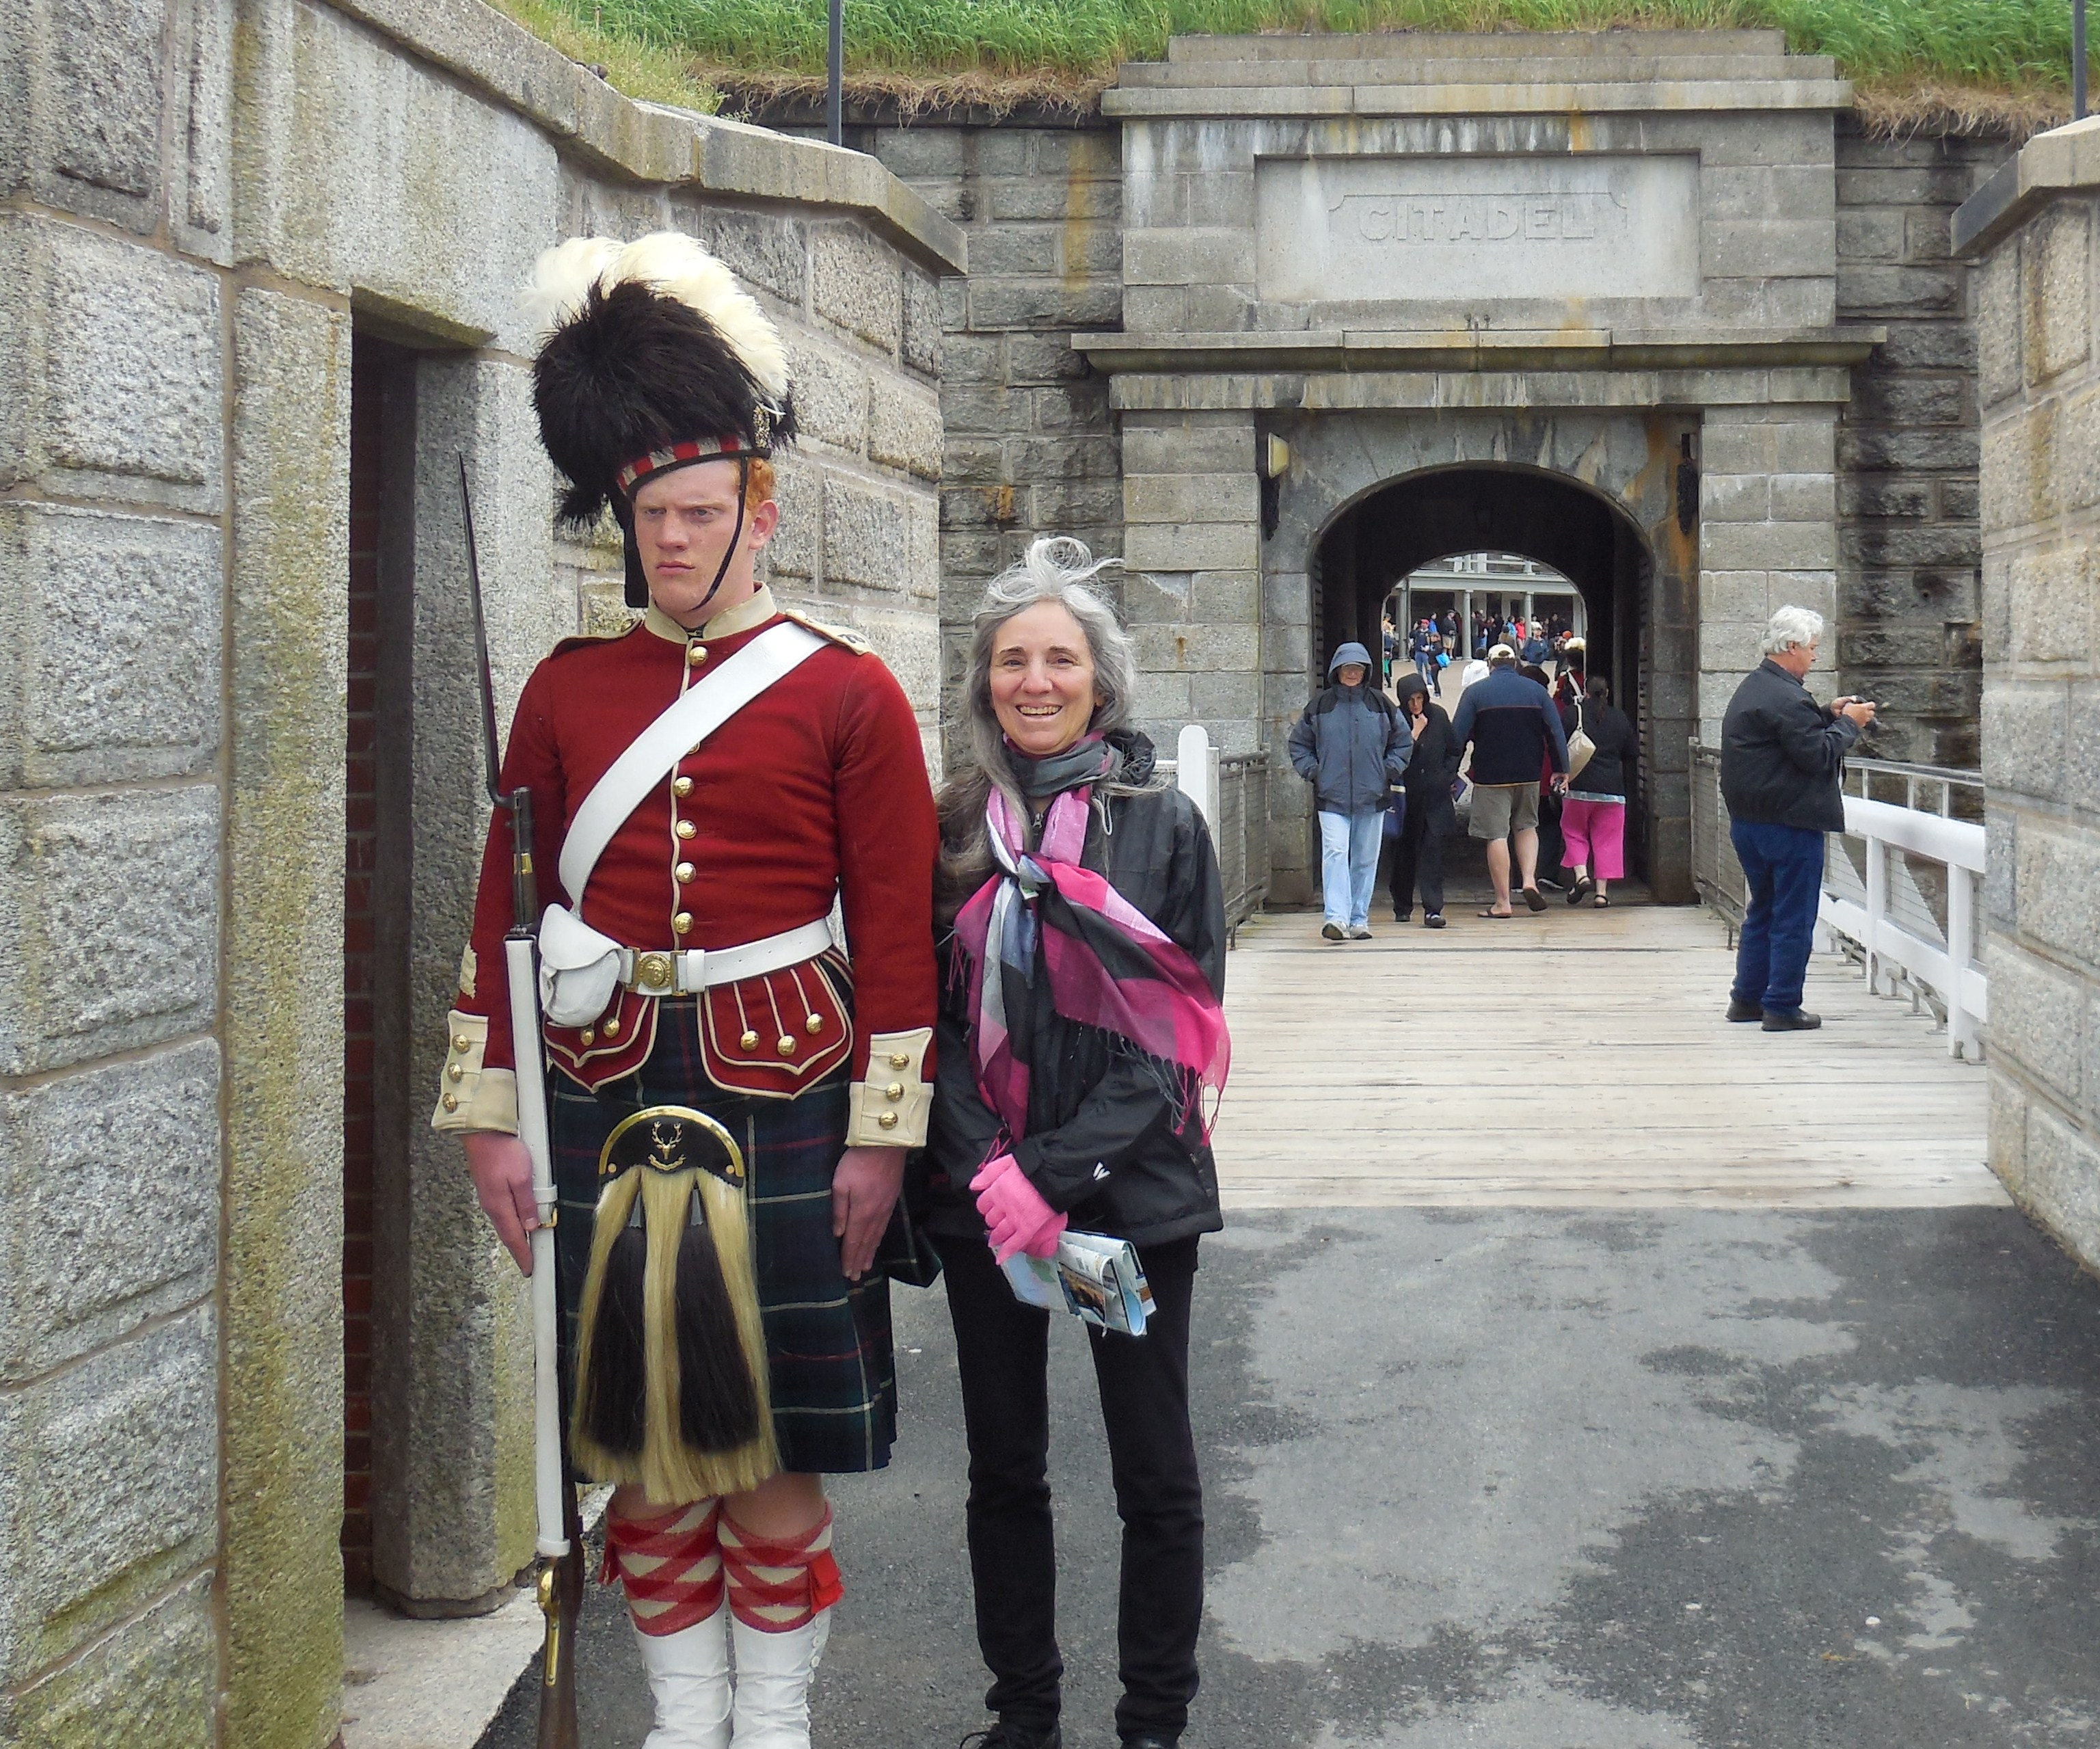 Guard at Fort, Halifax